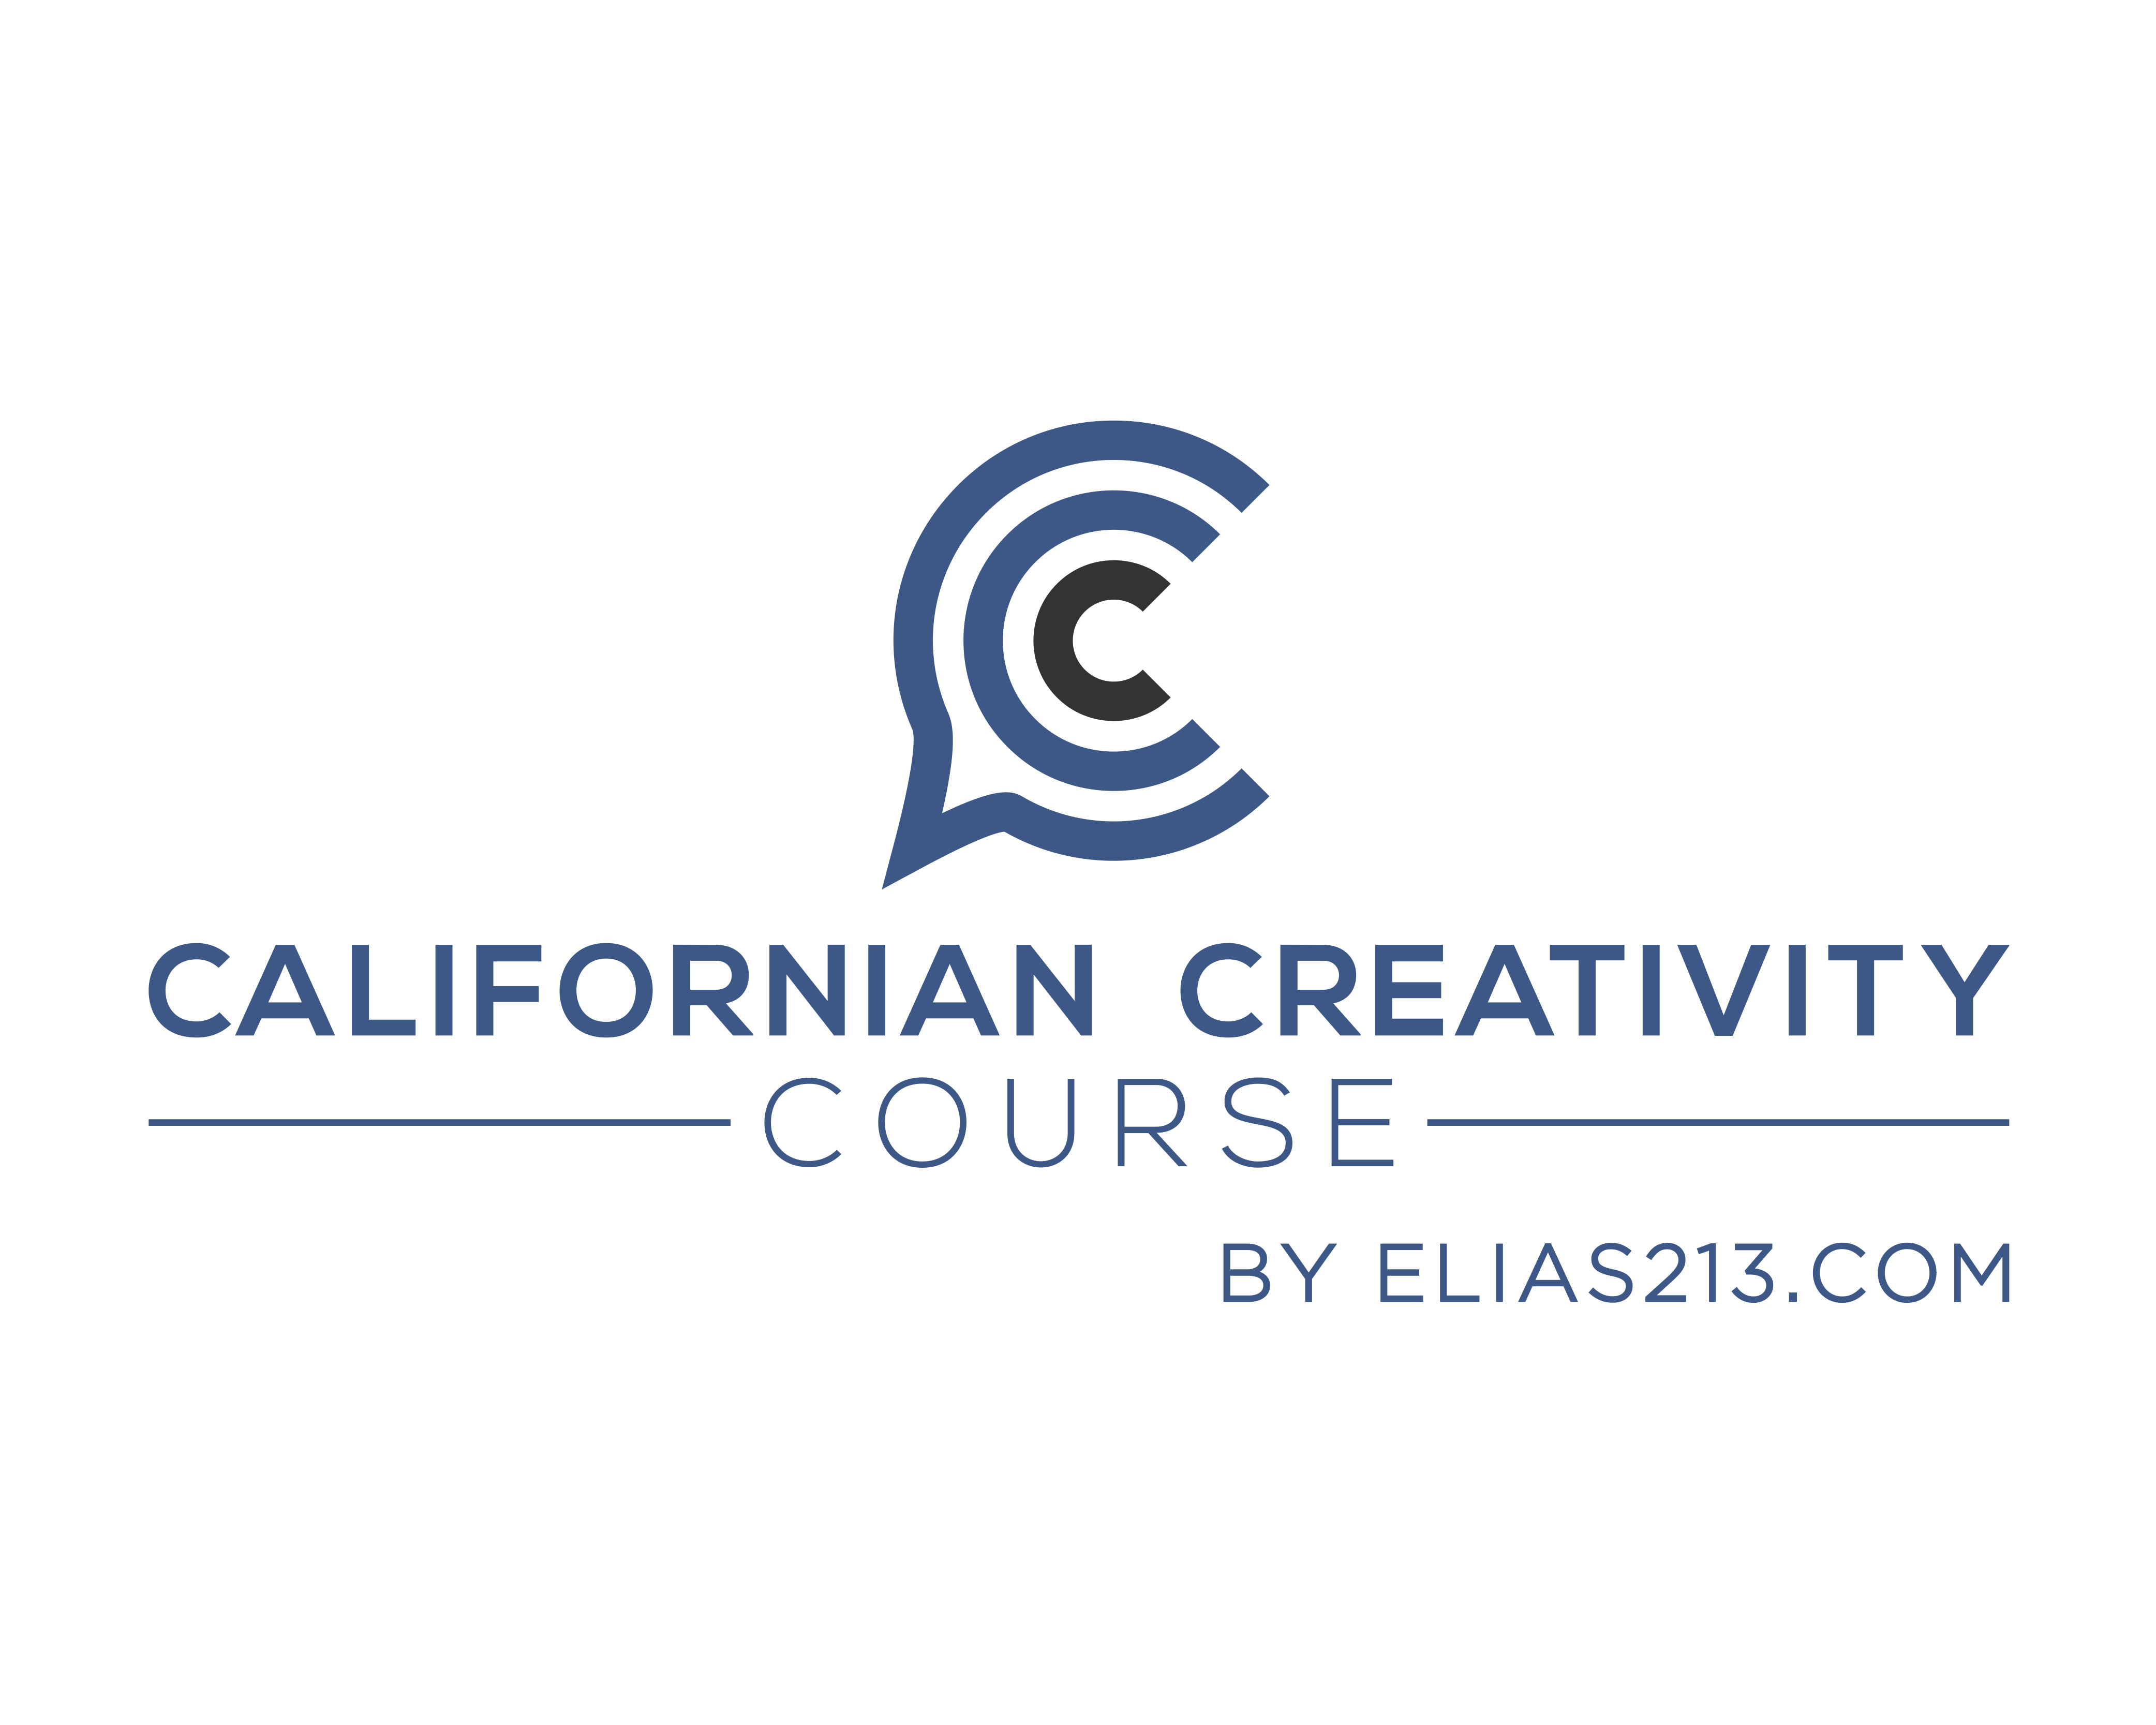 Californian Creativity Course - Elias Jabbe Elias213.com CaliCreativityCourse.co